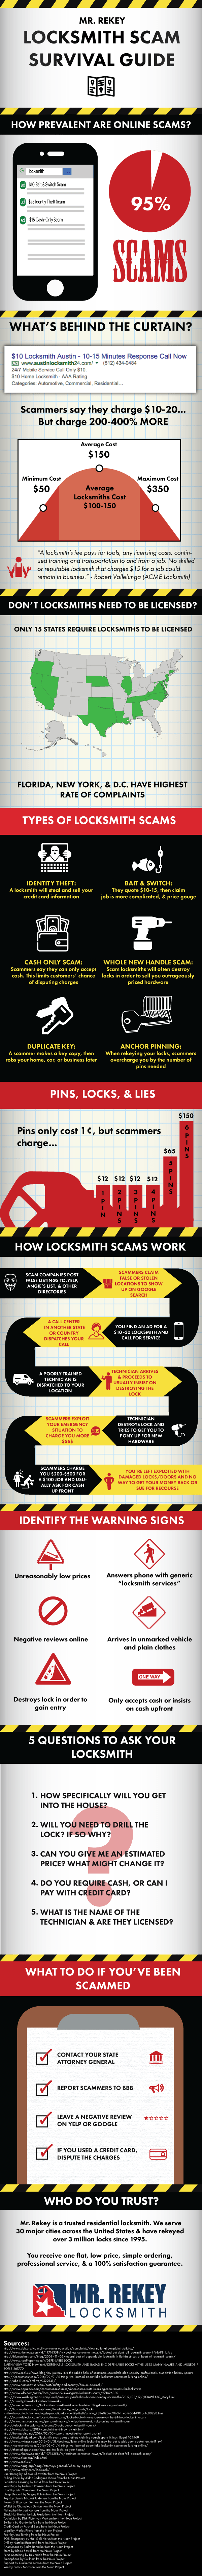 Locksmith Scam Survival Guide: How to Protect Your Home and Family Infographic